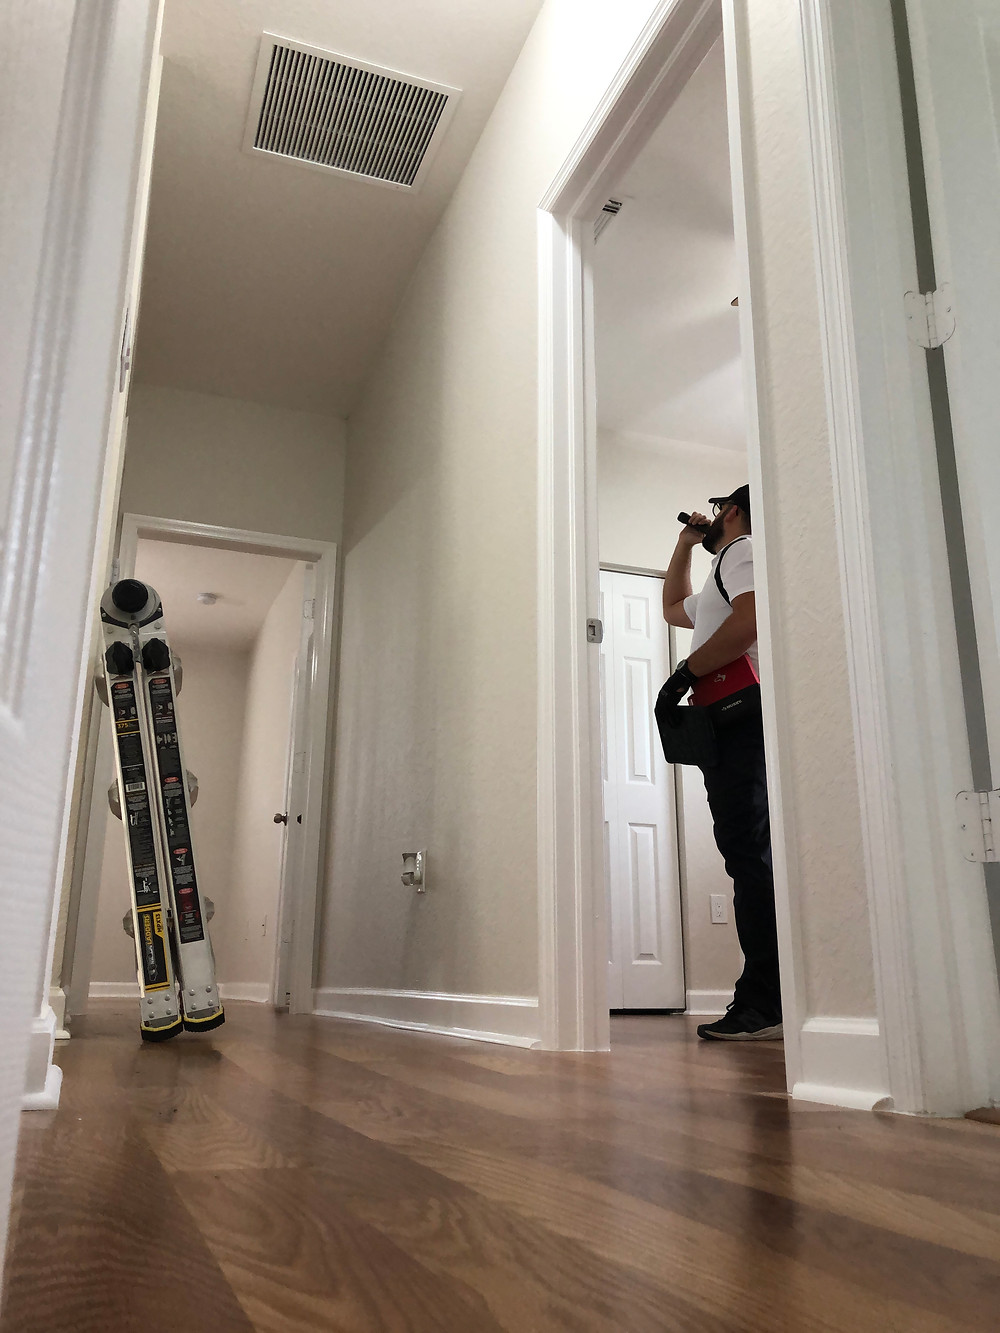 One of CR Pro Home Inspection's inspectors inspecting